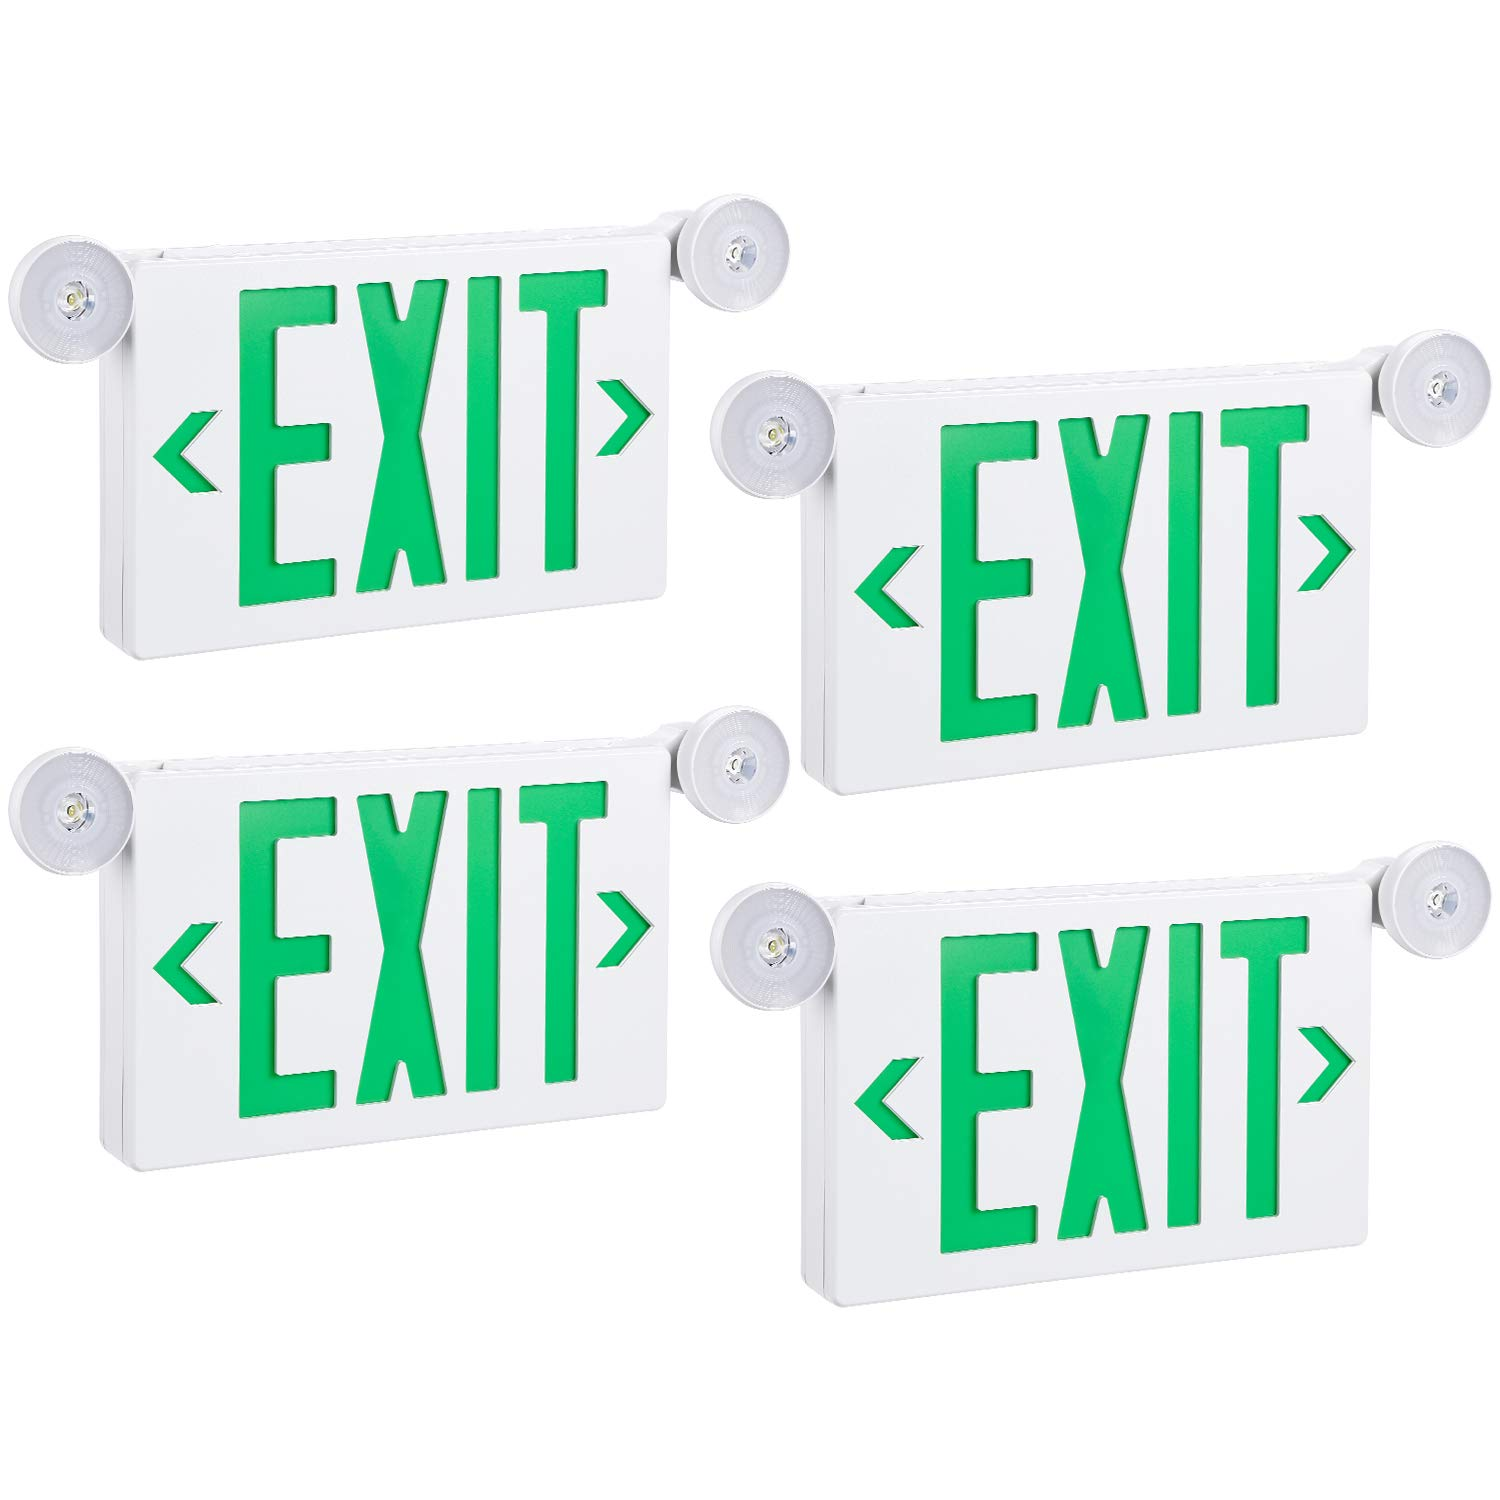 TORCHSTAR Green LED Exit Sign with Emergency Lights, Two Adjustable Head, Double Face, AC 120V/277V, Battery Backup, Top/Side/Back Mount Exit Light Combo, UL Listed for Commercial, Business, Pack of 4